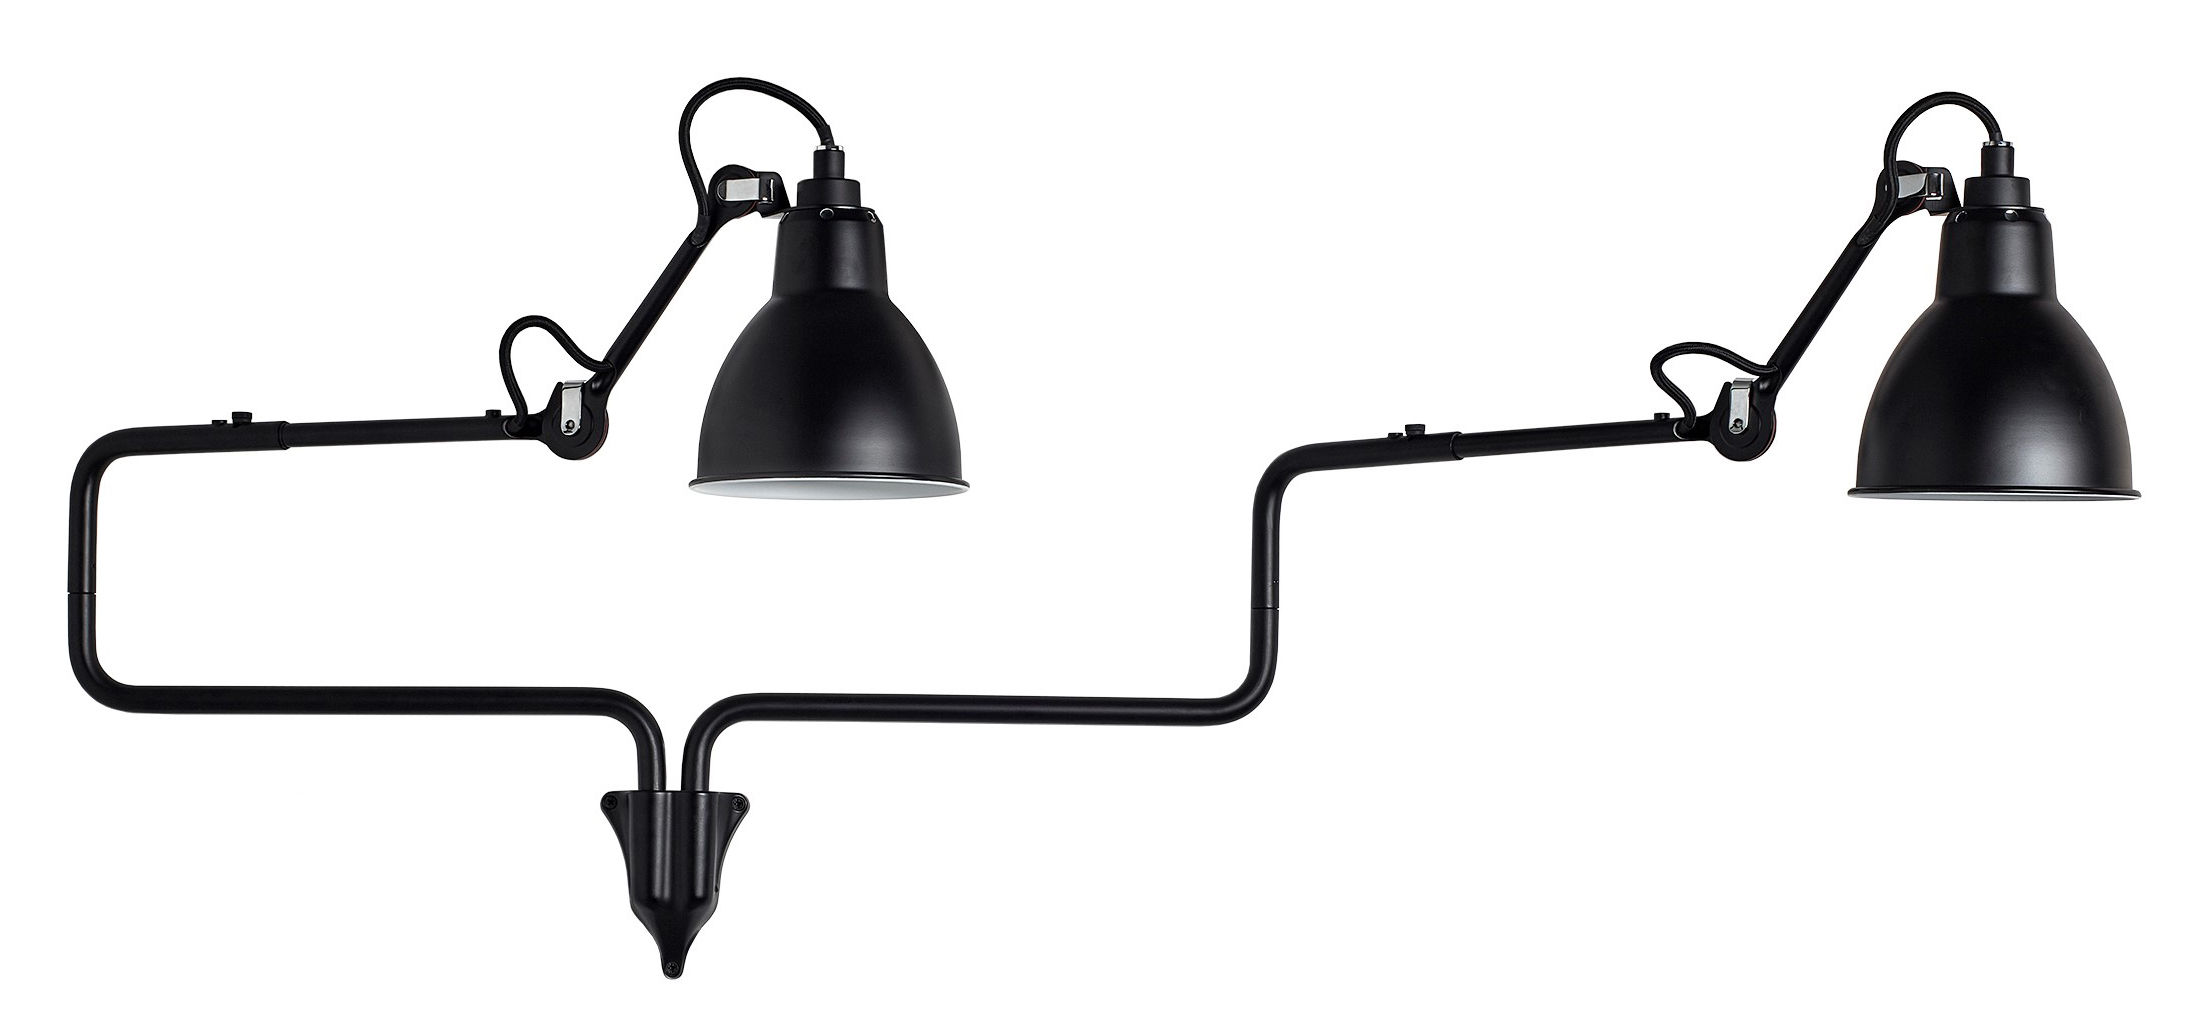 Lighting - Wall Lights - N° 303  Double Wall light - Lampe Gras by DCW éditions - Black satin - Aluminium, Steel